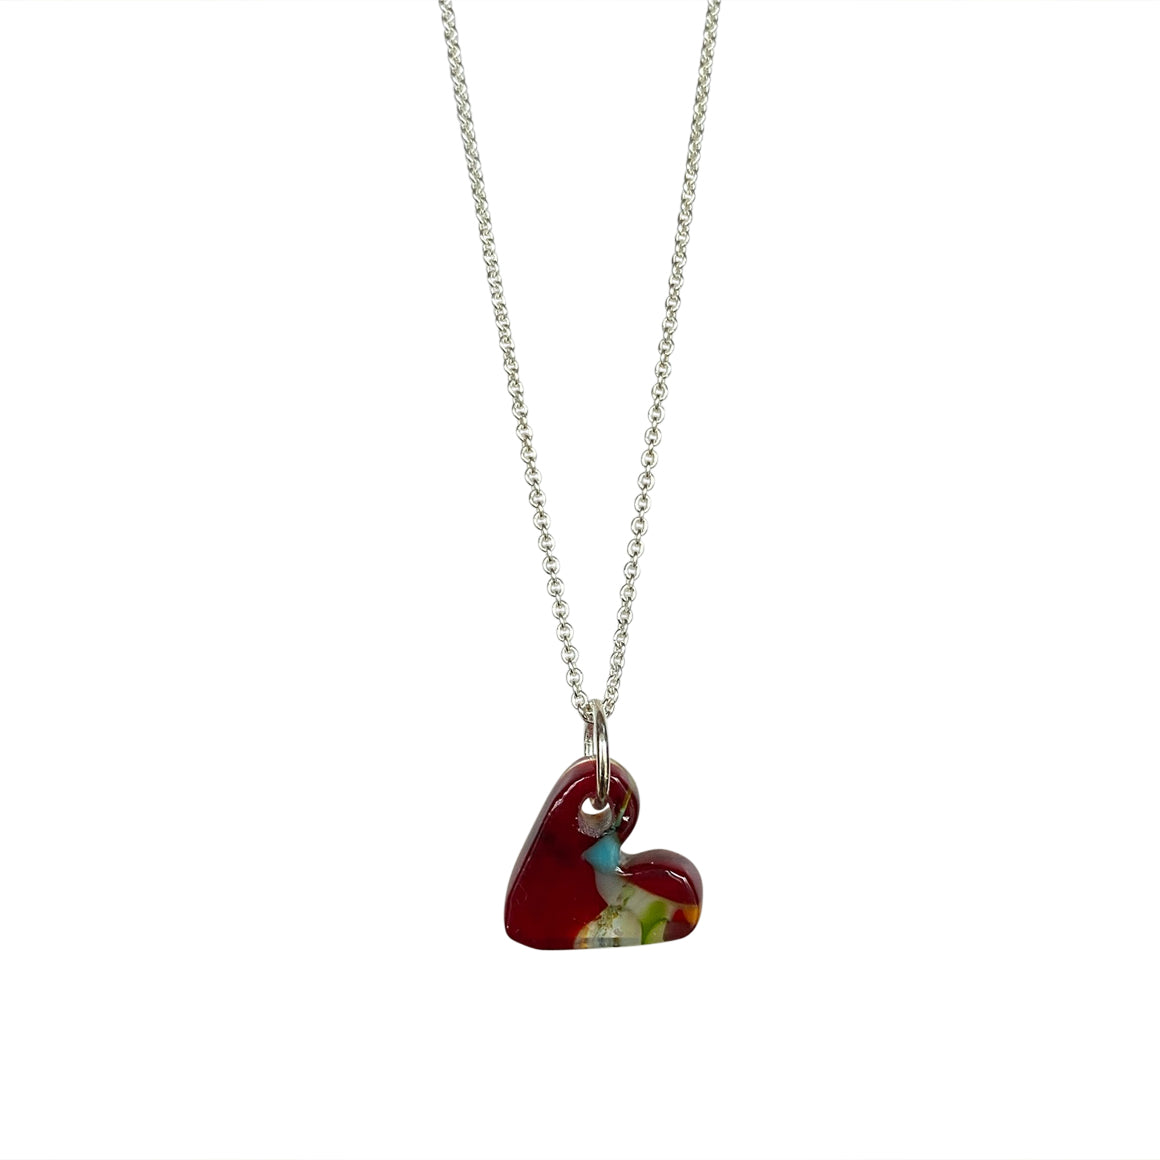 McGonigle Glass Heart Pendant - Red